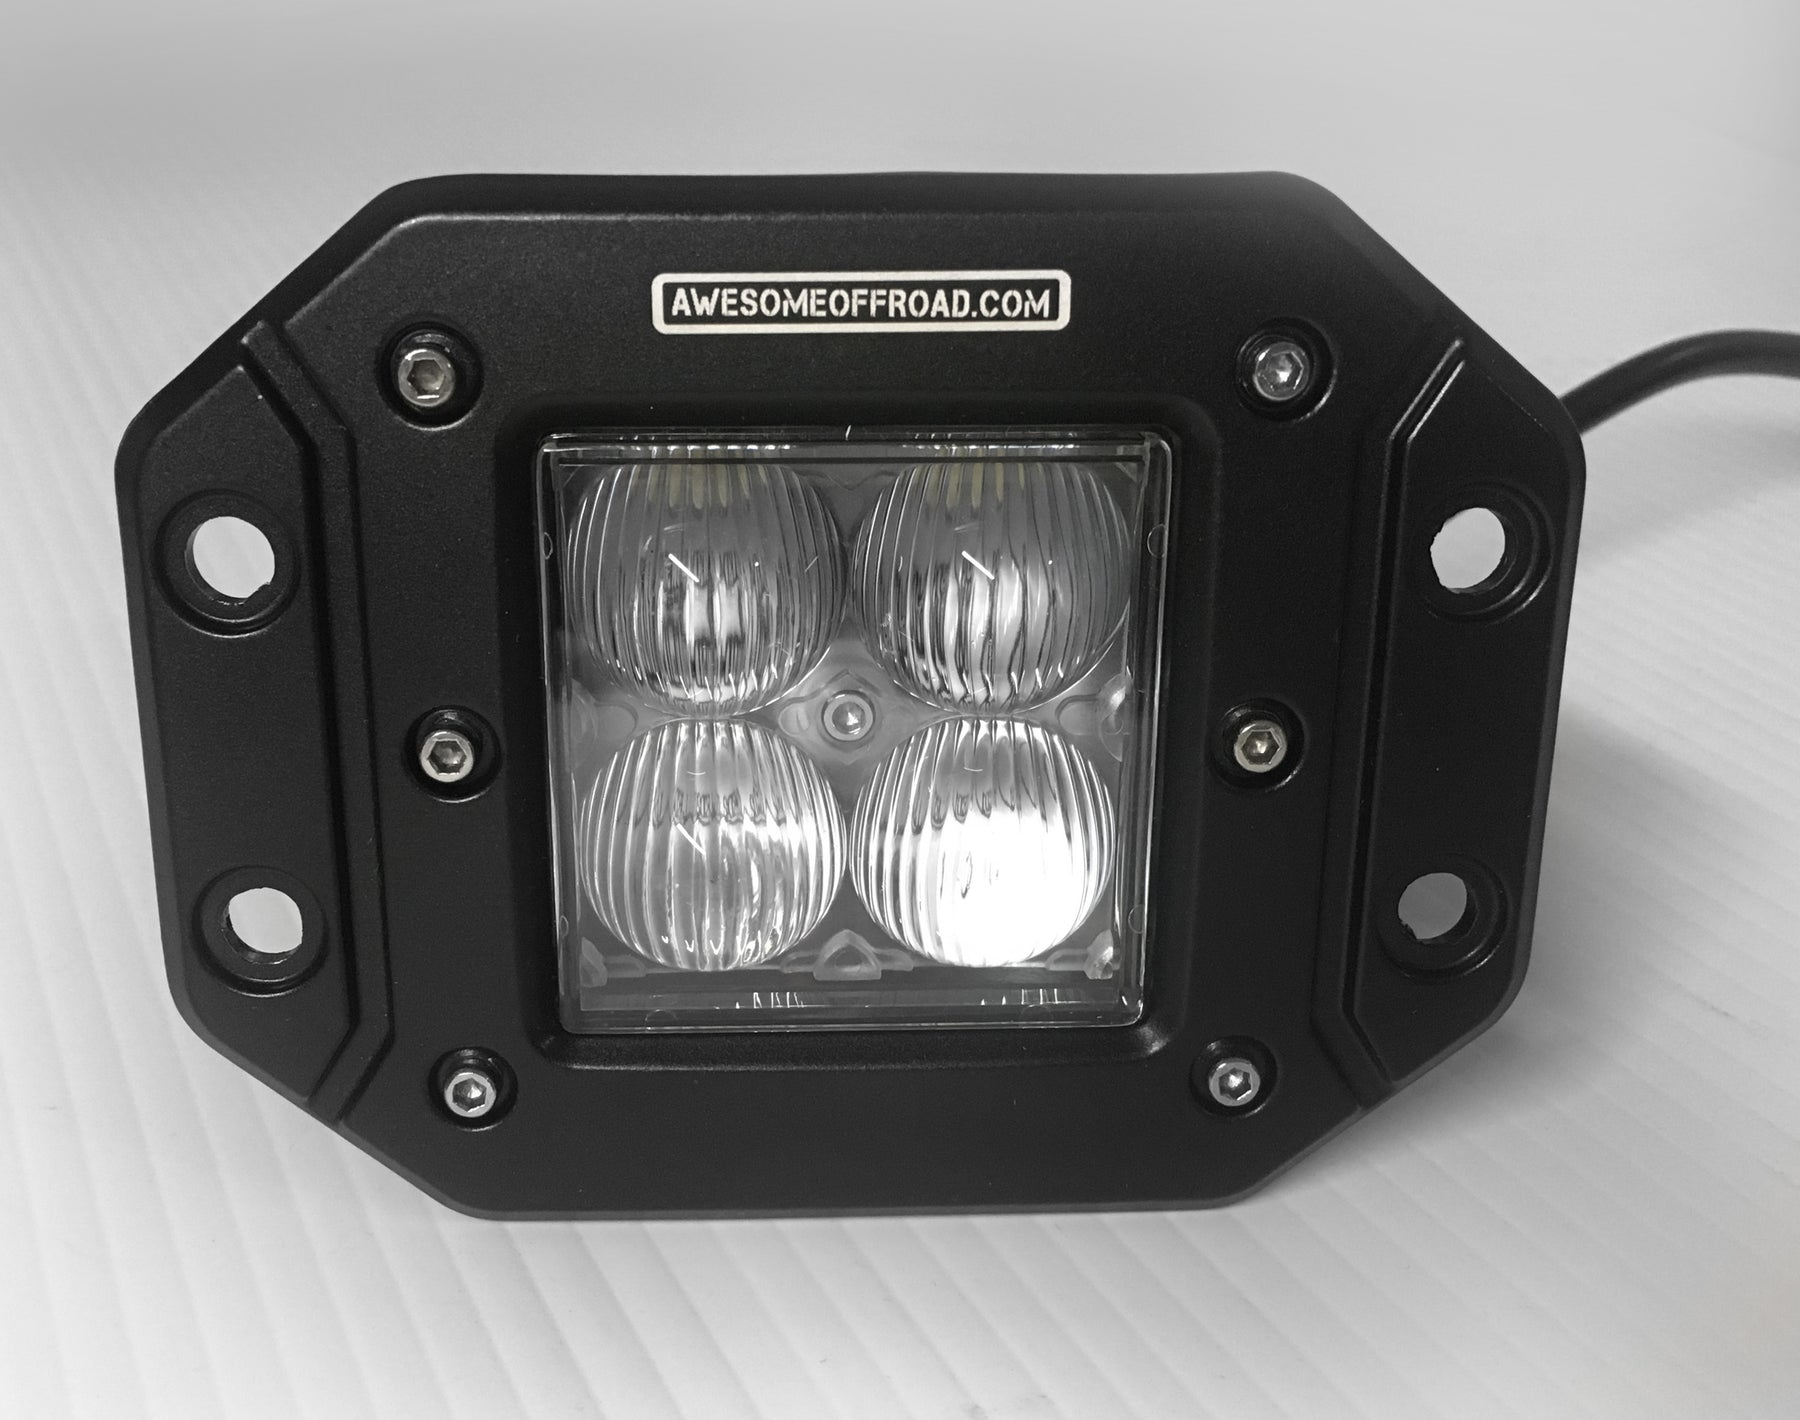 Flush Mount Pod LED Flood by AWESOMEOFFROAD